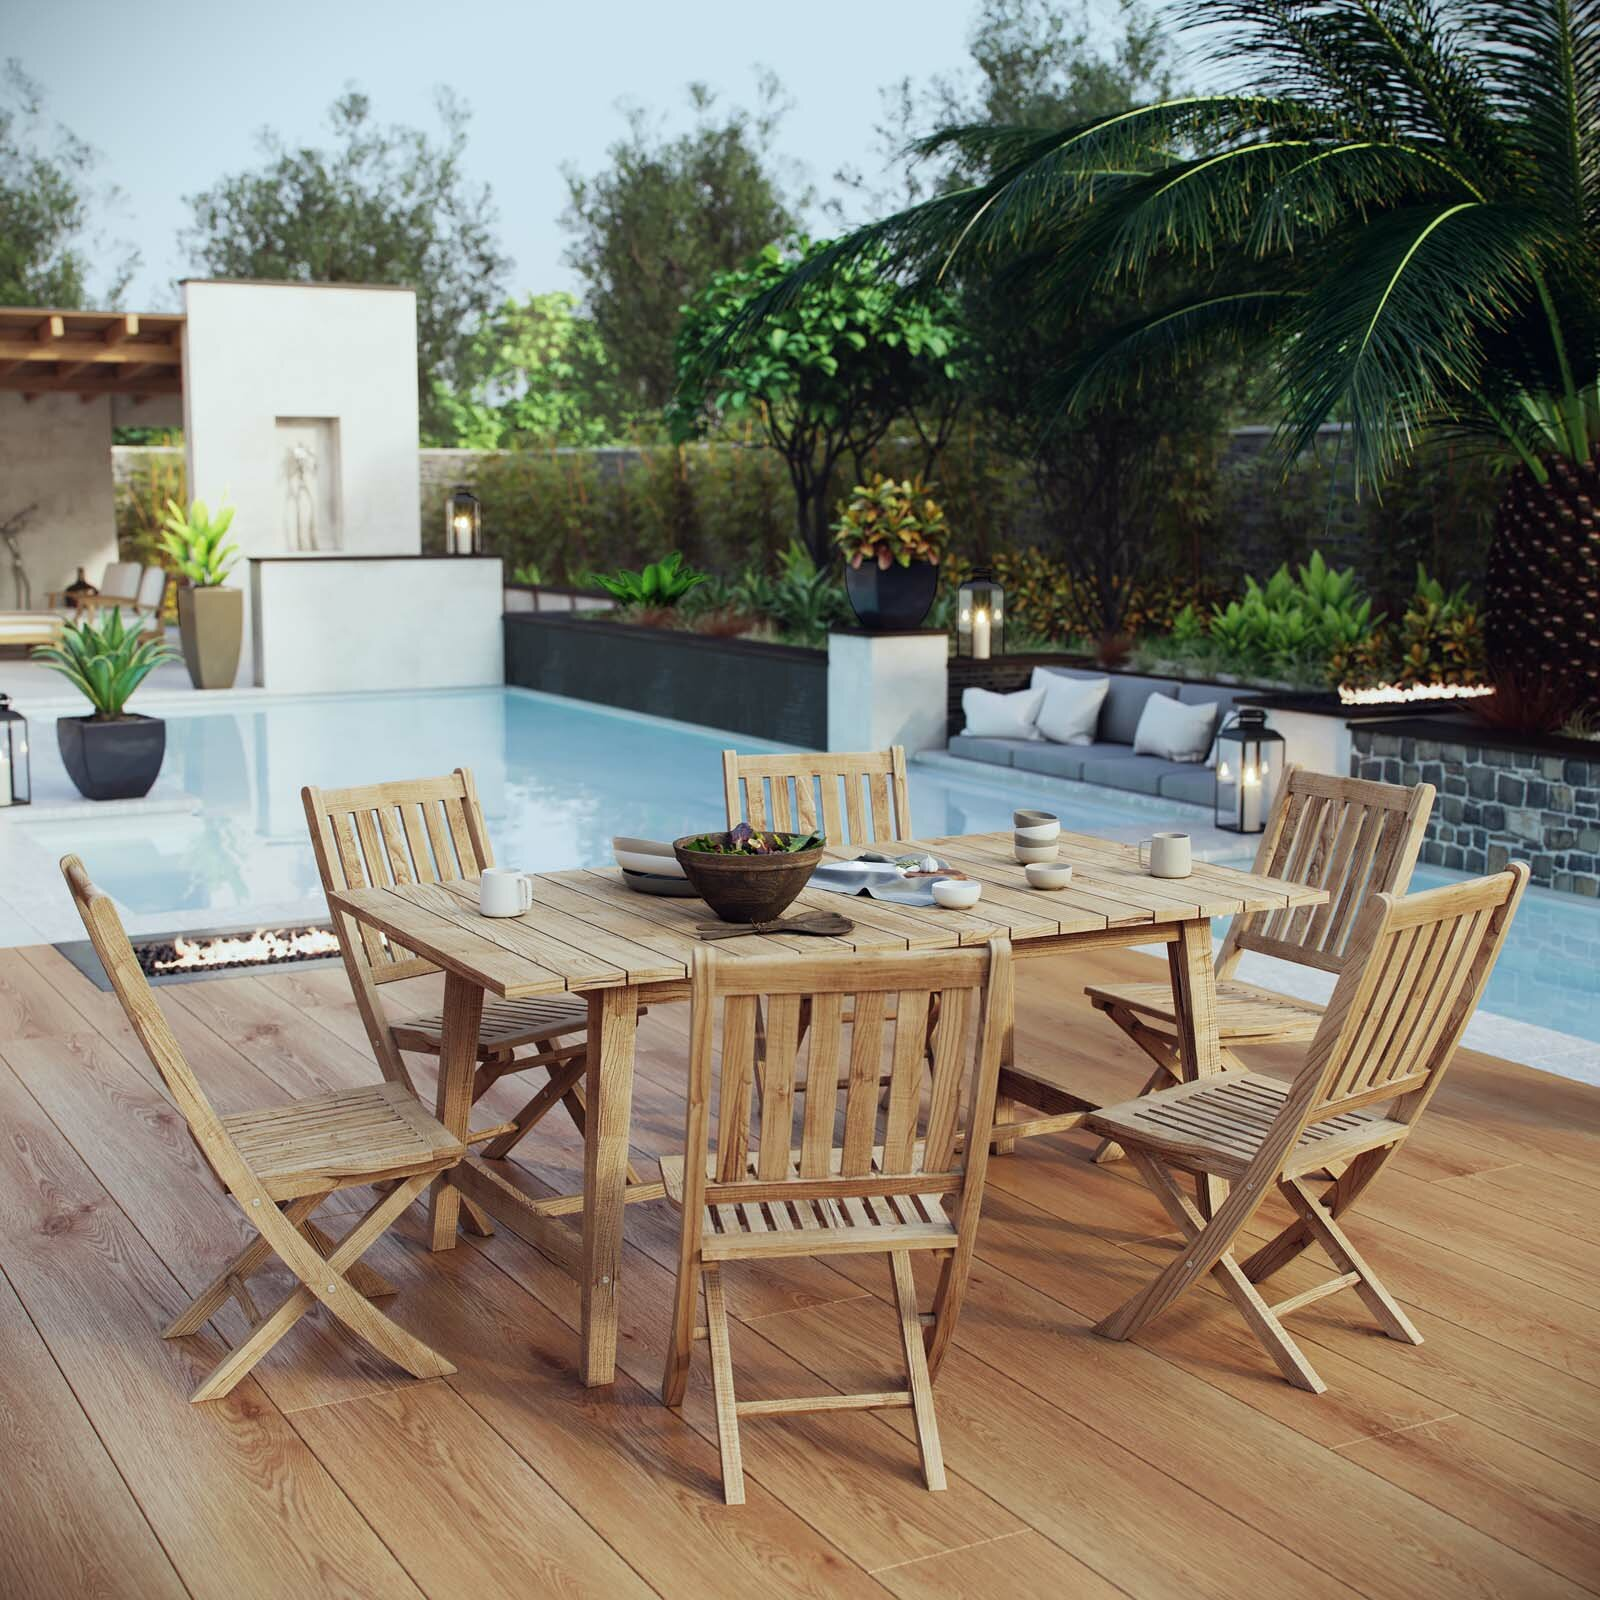 Modern rustic interiors anthony outdoor patio 7 piece teak - Outdoor interiors 7 piece patio set ...